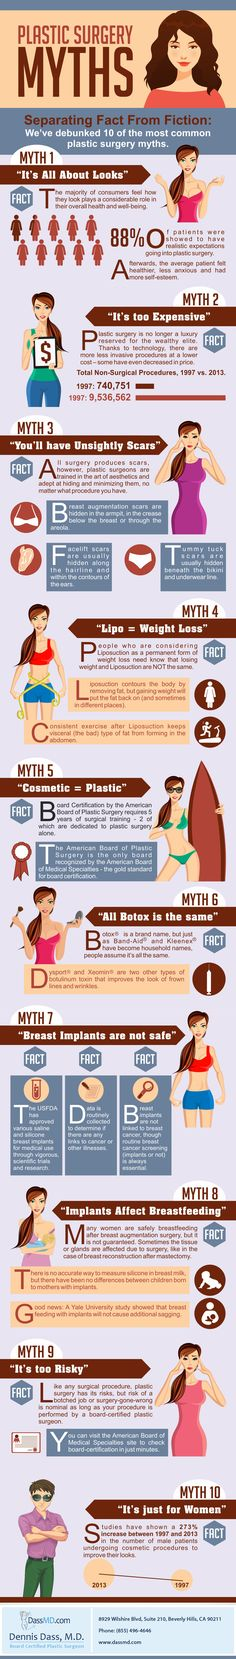 Myth Busting: What You Should Know About Plastic Surgery www.drroche.com